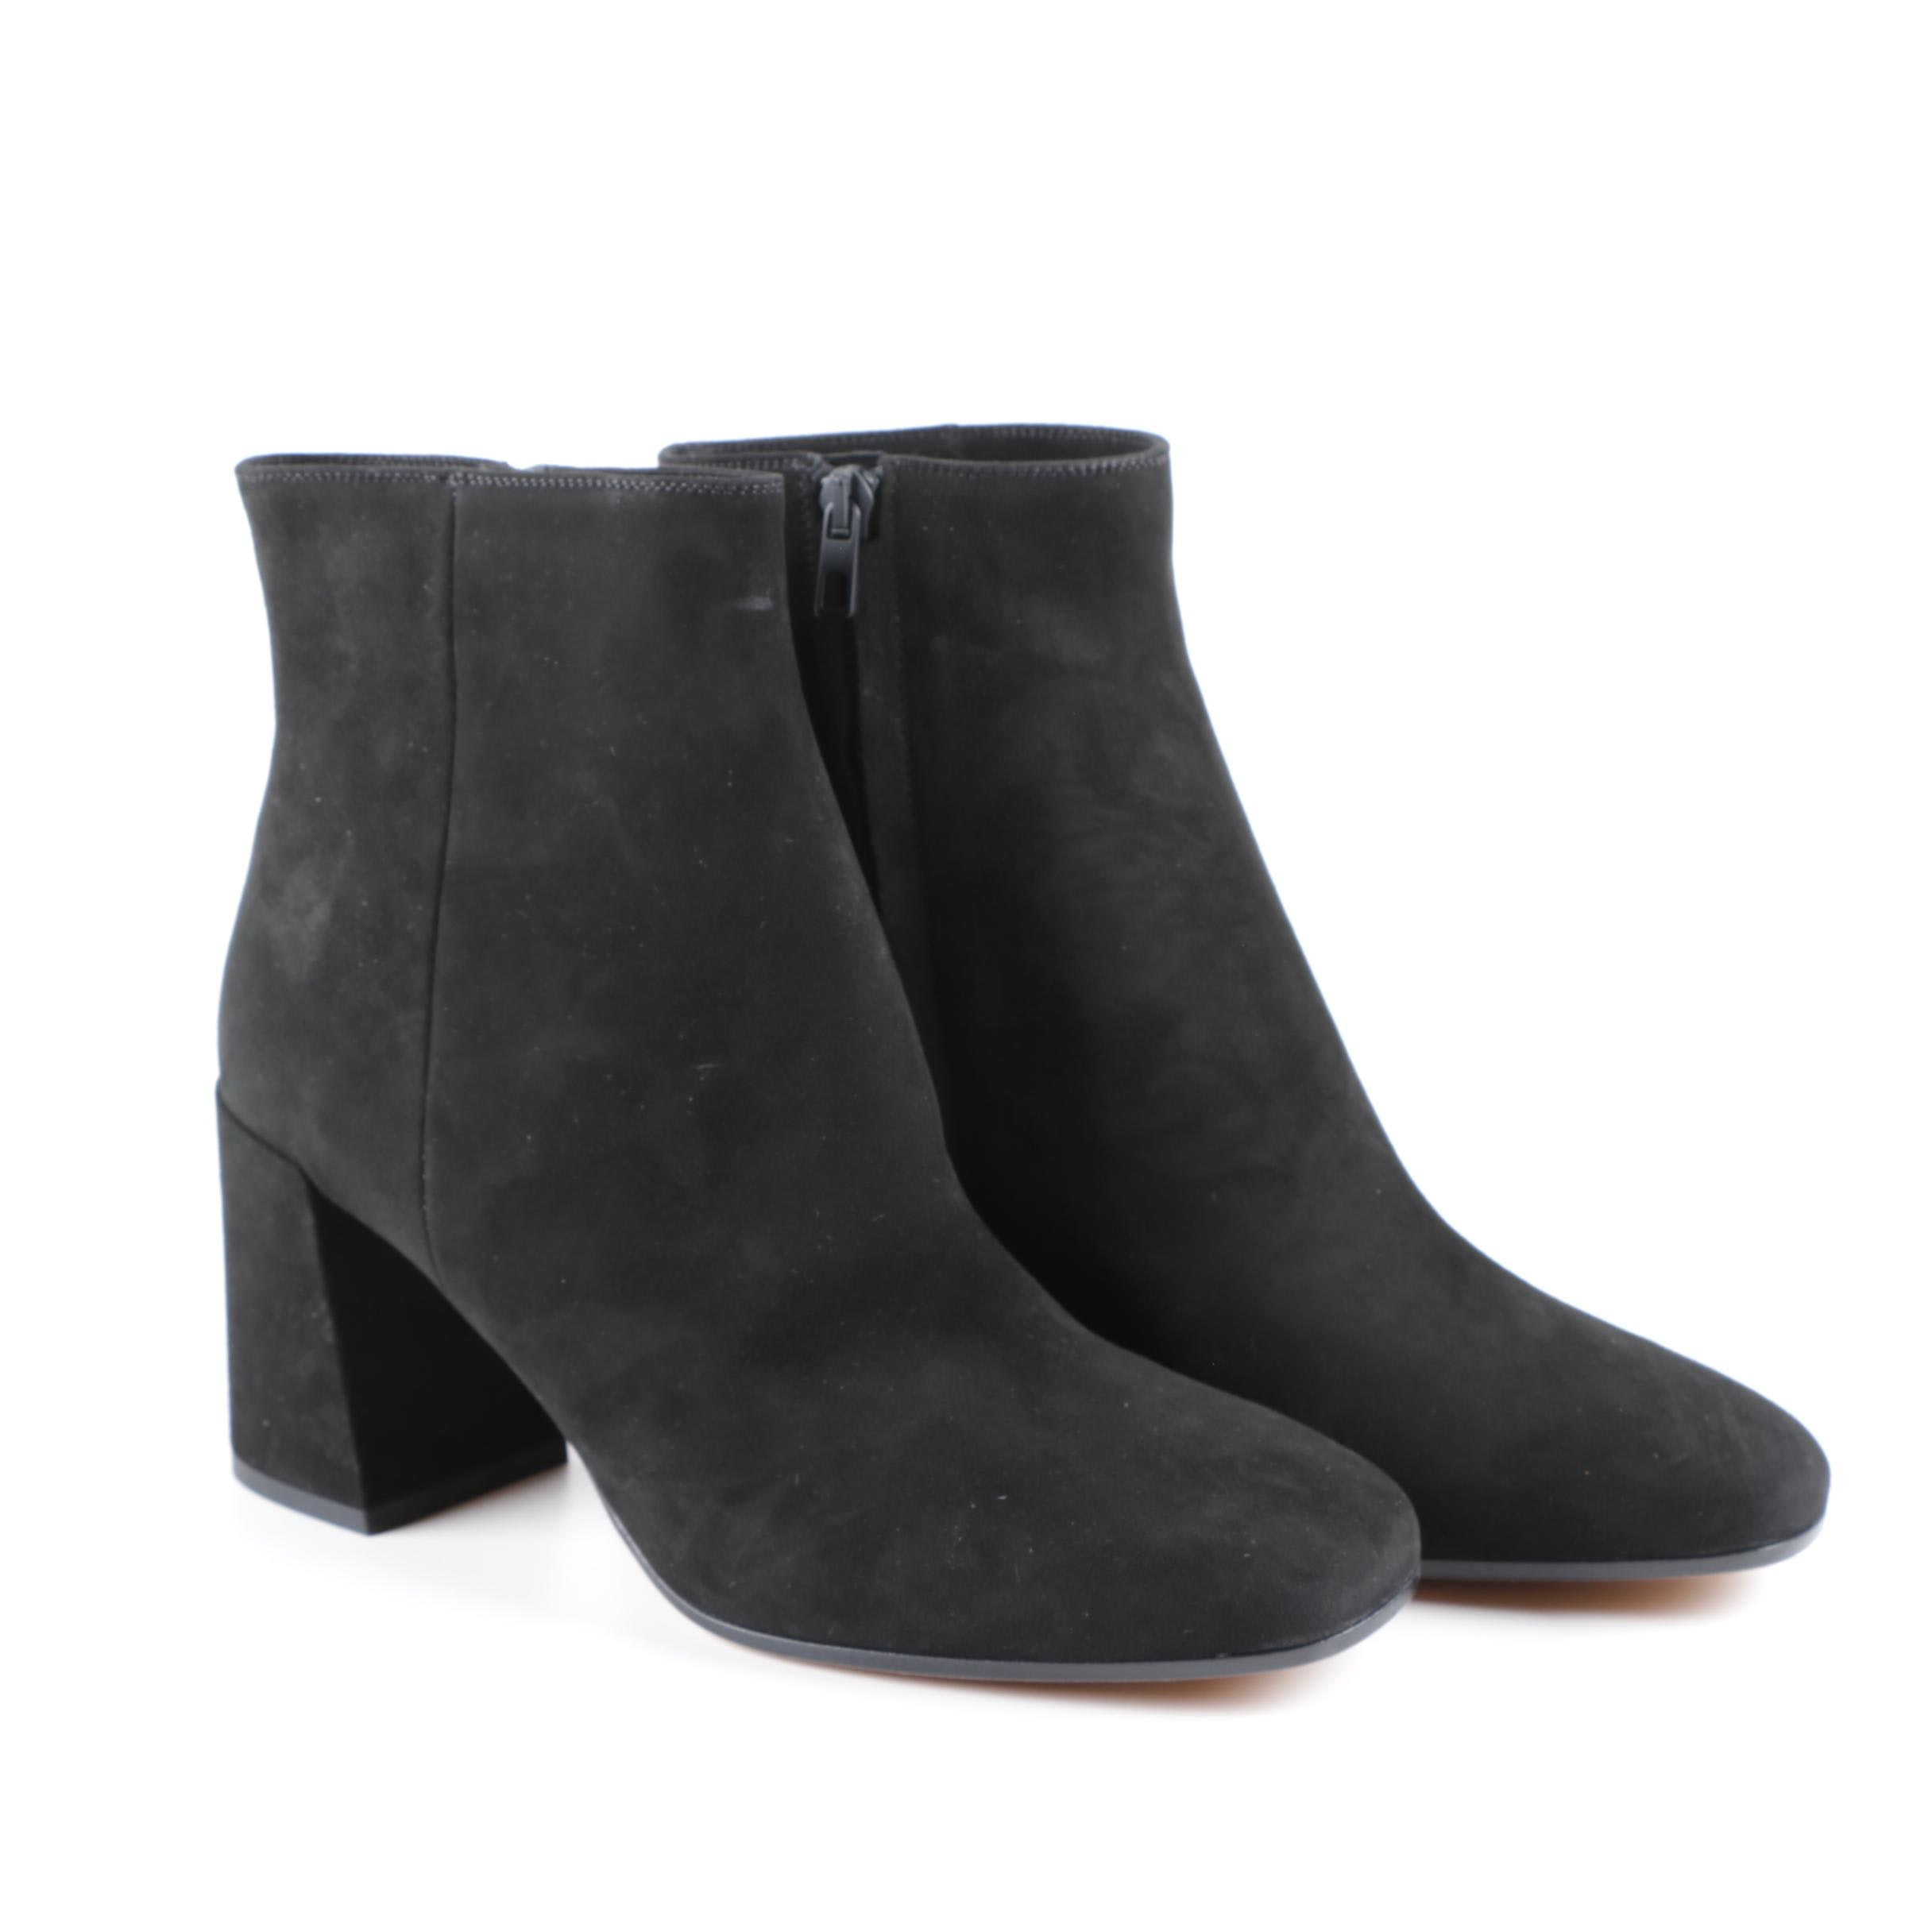 Women's Vince Black Suede Block Heeled Ankle Boots, Made in Italy